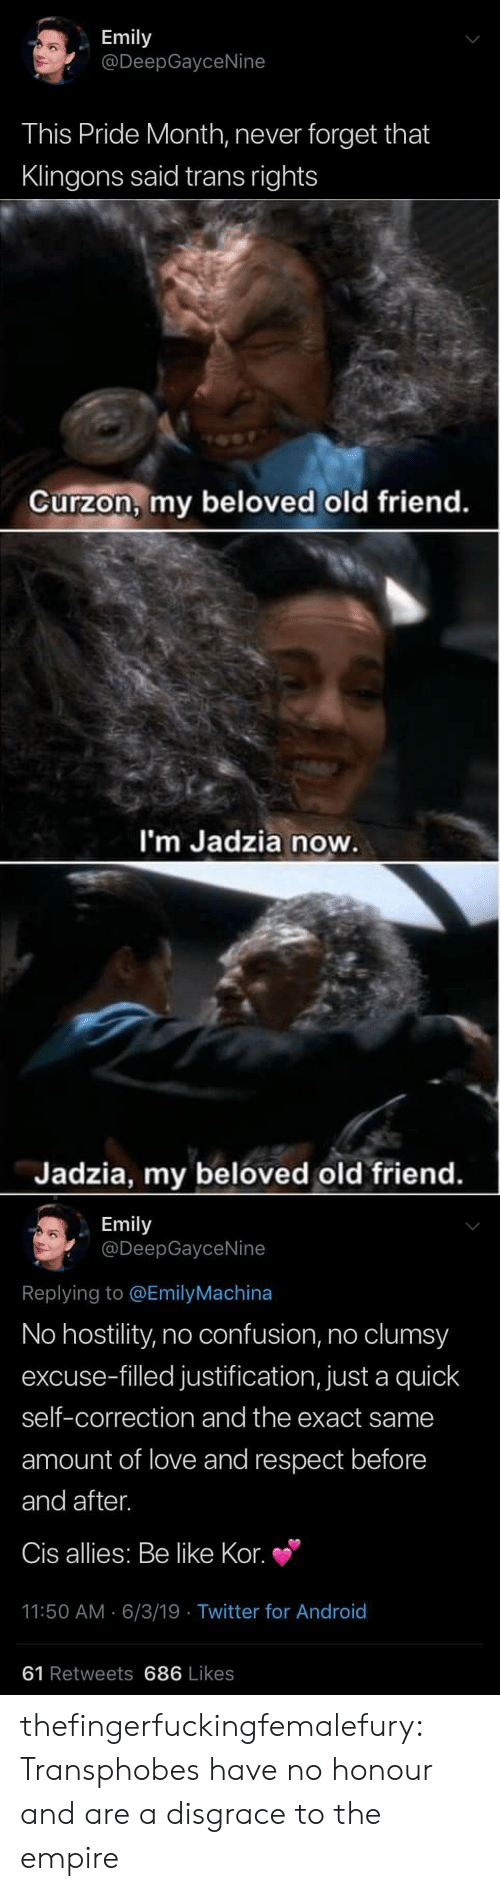 Emily: Emily  @DeepGayceNine  This Pride Month, never forget that  Klingons said trans rights   Curzon, my beloved old friend.  I'm Jadzia now.  Jadzia, my beloved old friend.   Emily  @DeepGayceNine  Replying to @EmilyMachina  No hostility, no confusion, no clumsy  excuse-filled justification, just a quick  self-correction and the exact same  amount of love and respect before  and after.  Cis allies: Be like Kor.  11:50 AM 6/3/19 Twitter for And roid  61 Retweets 686 Likes thefingerfuckingfemalefury: Transphobes have no honour and are a disgrace to the empire